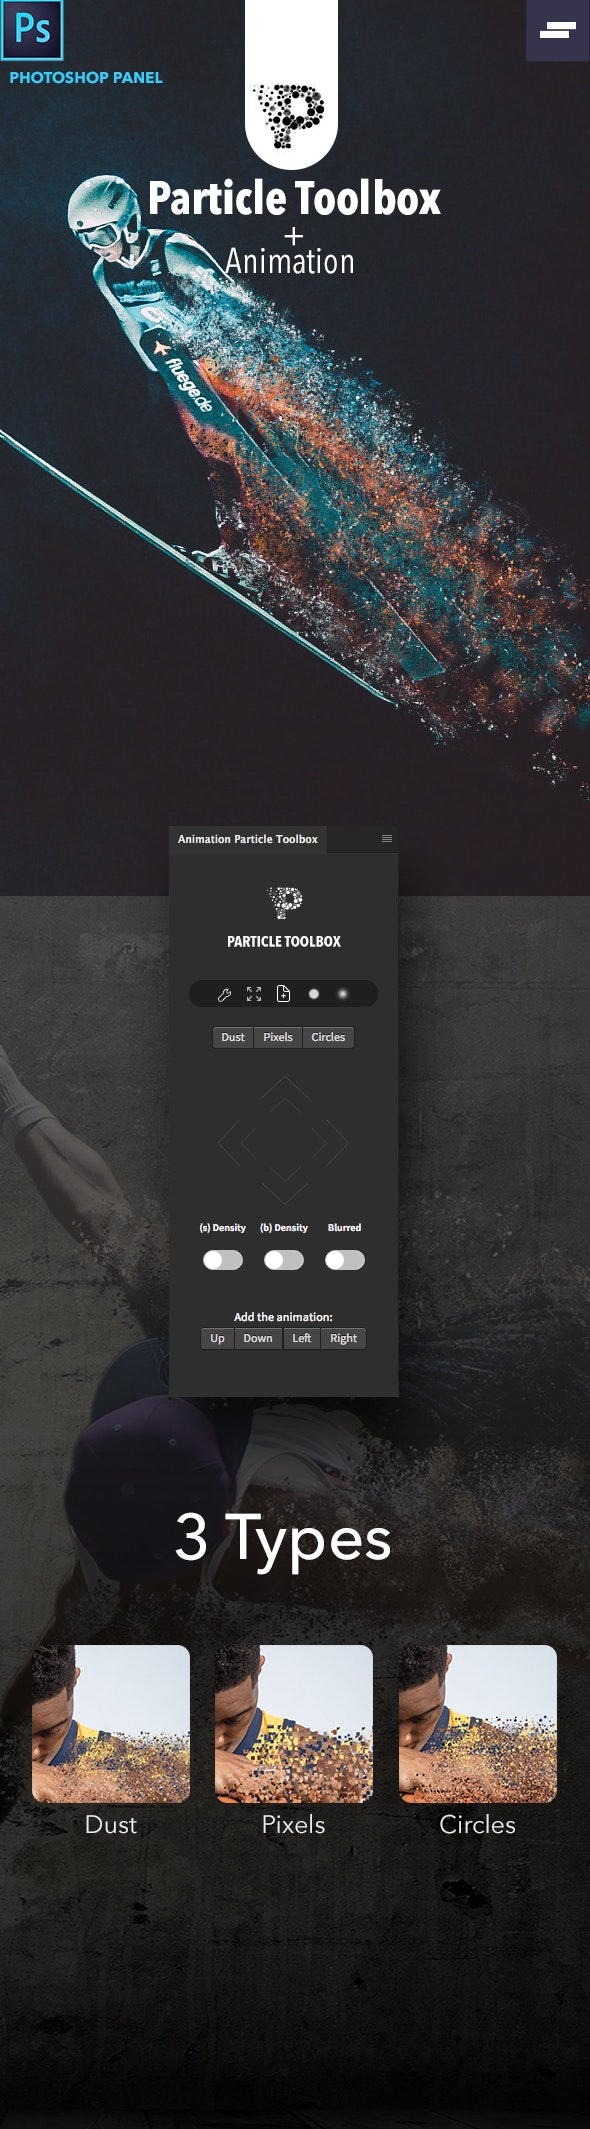 Animation Particle Toolbox Photoshop Panel - Utilities Actions